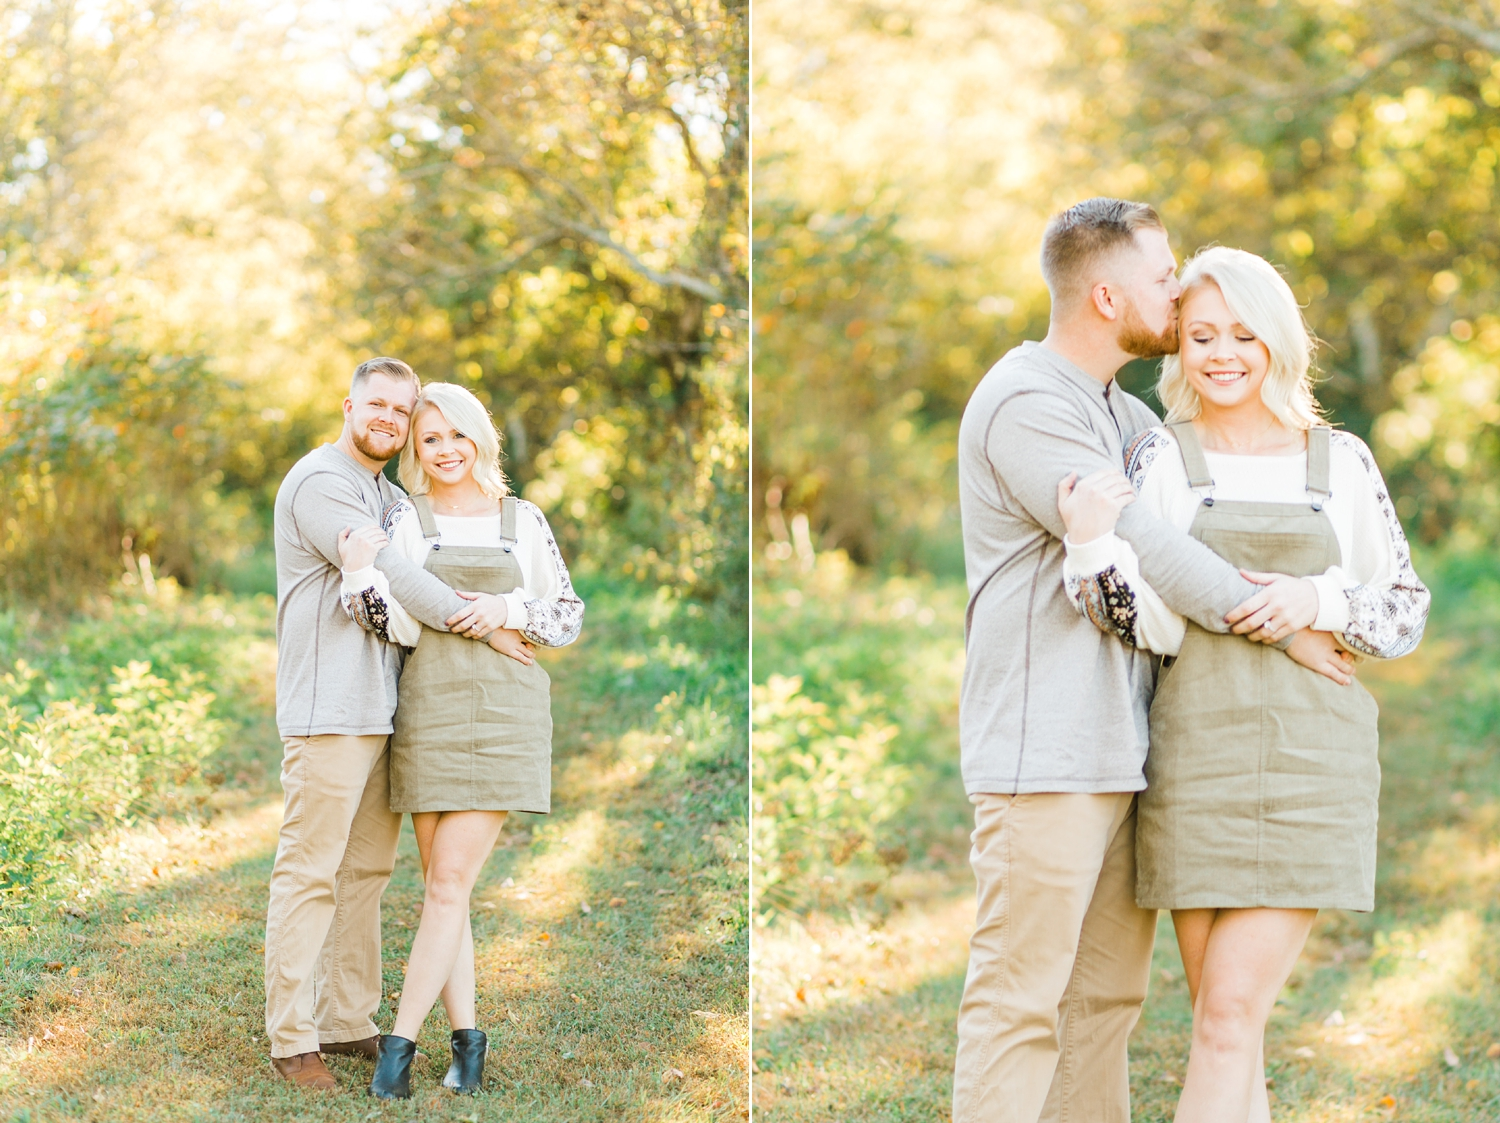 sunset at melton hill park engagement photos couple